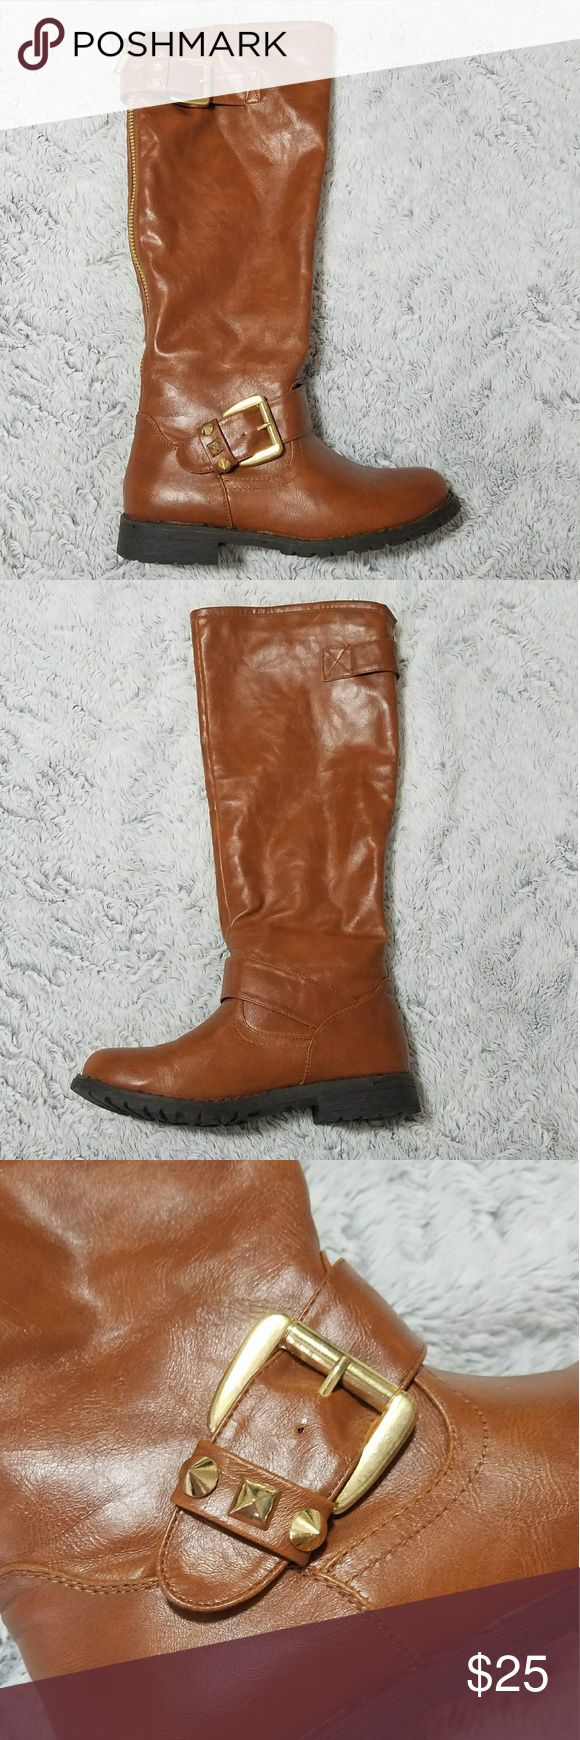 Camel Riding Boots With Gold Buckle Detailing Very cute, but the calf part is just too large for my chicken legs. Has cool studding at the buckle parts. Still wore these a few times but have since found a pair that hugs my legs more. Bamboo Shoes Winter & Rain Boots